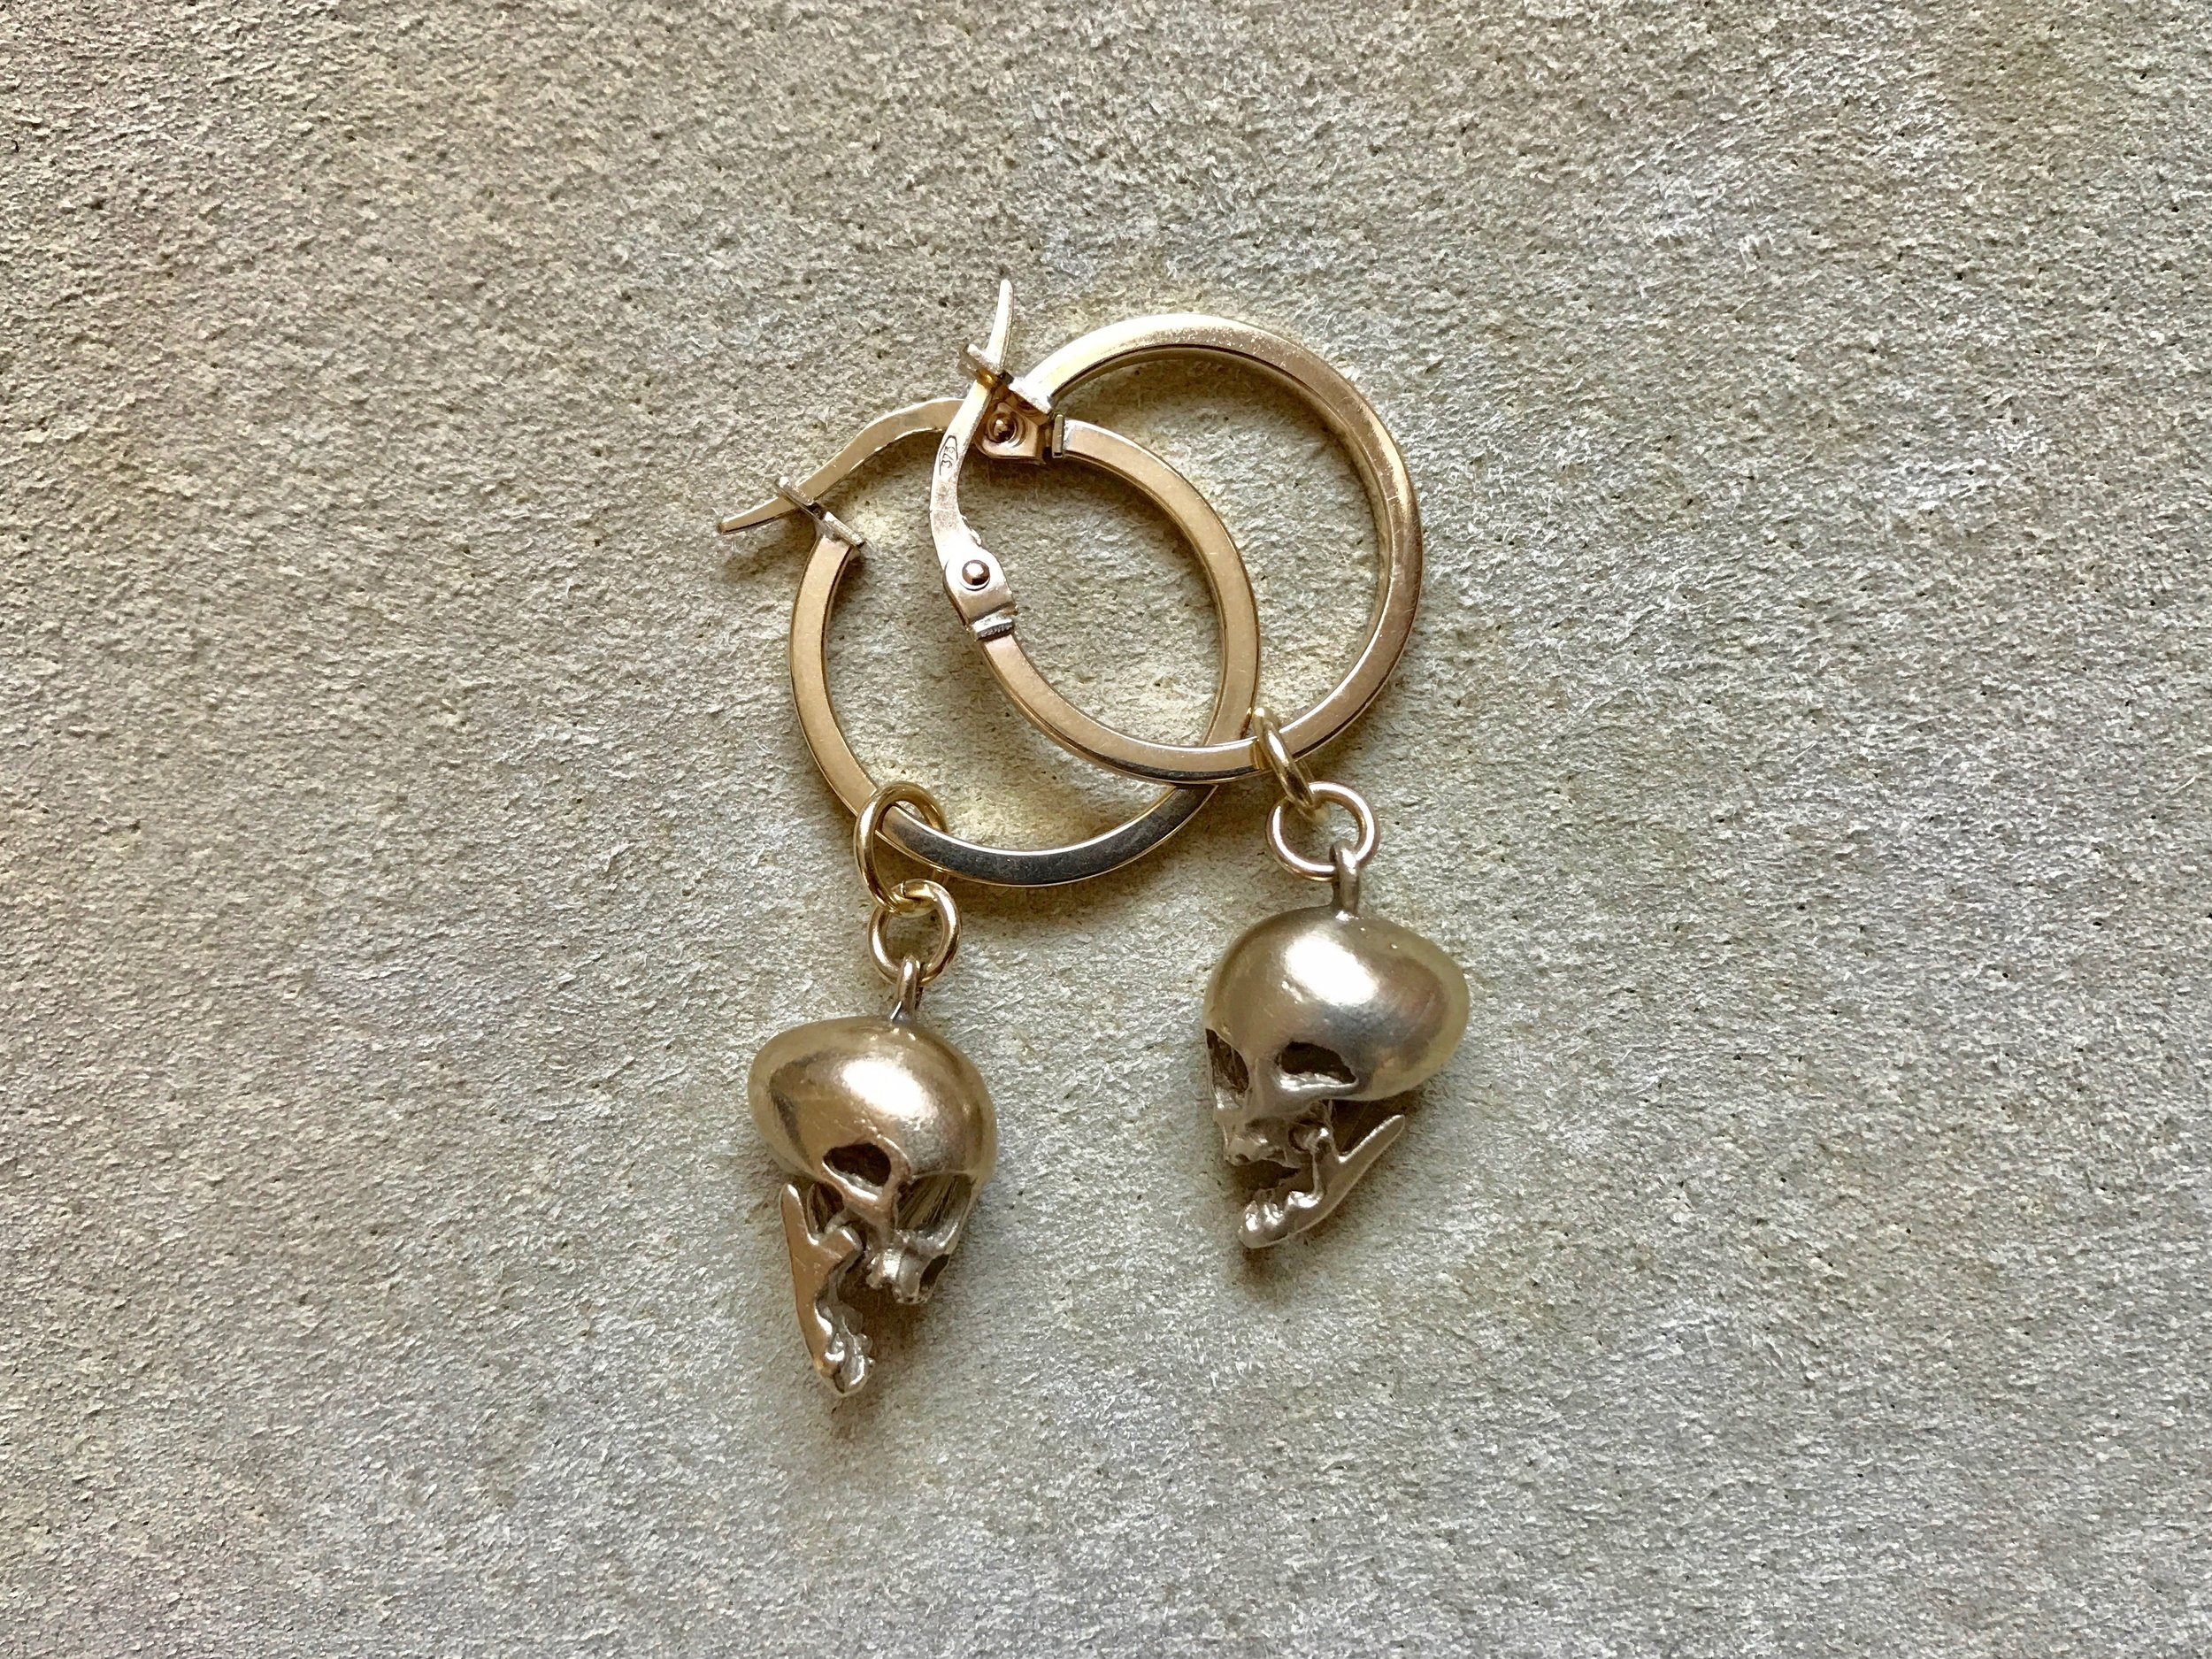 ARTICULATED SKULL PENDANT HOOPS